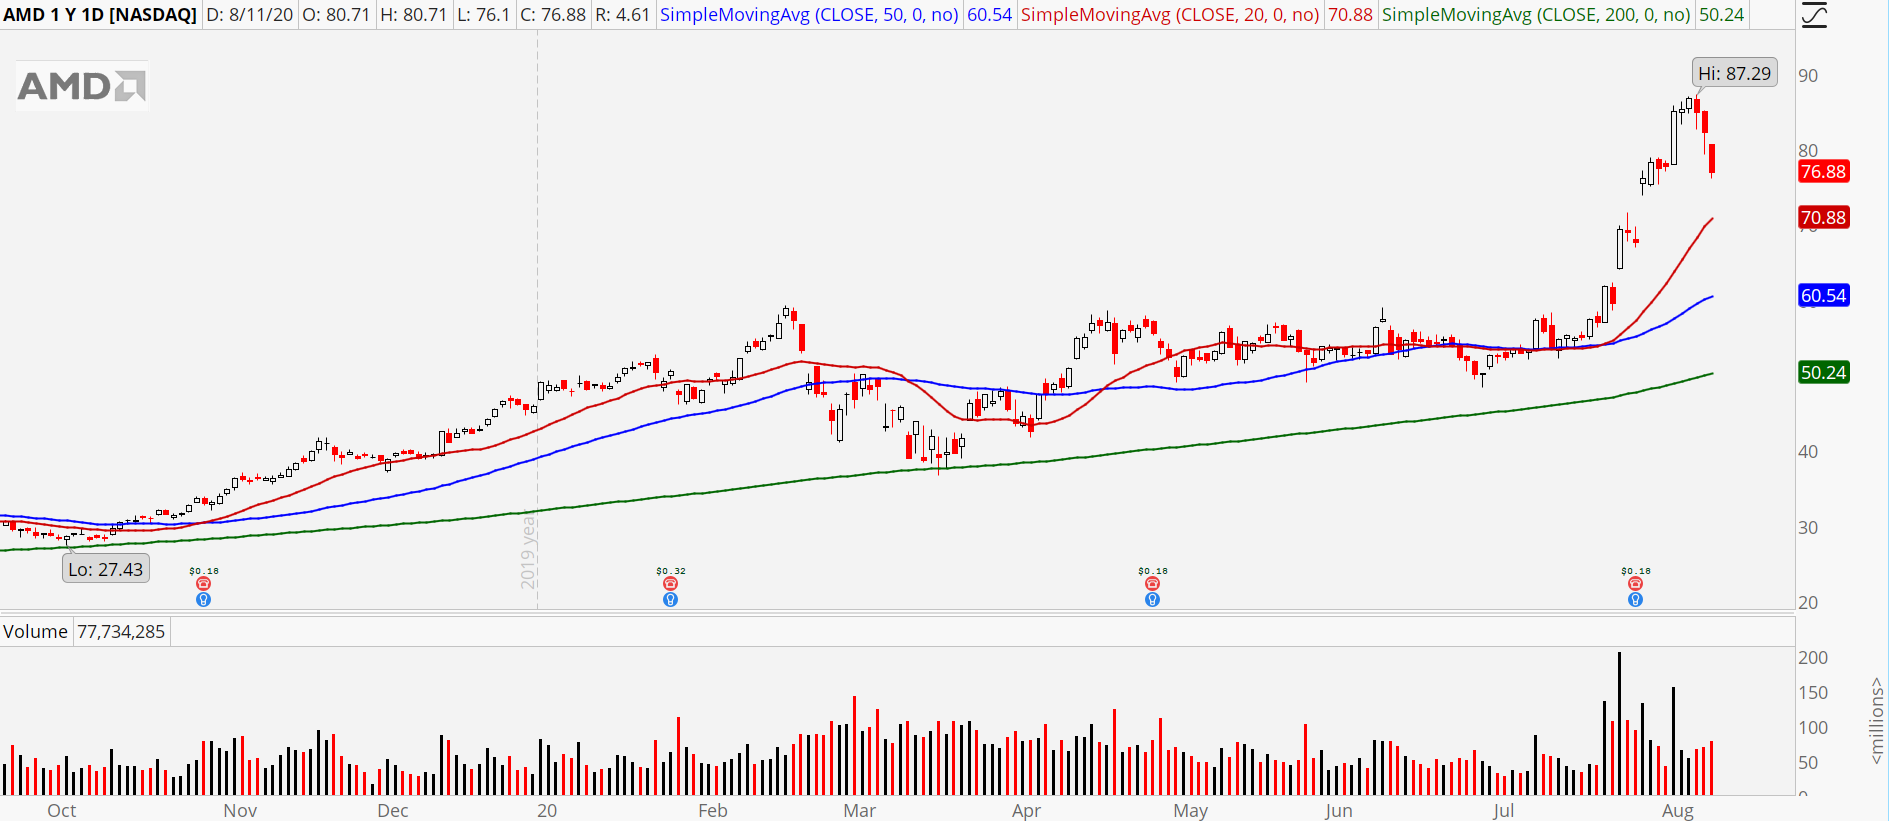 Advanced Micro Devices (AMD) stock chart showing bull retracement pattern